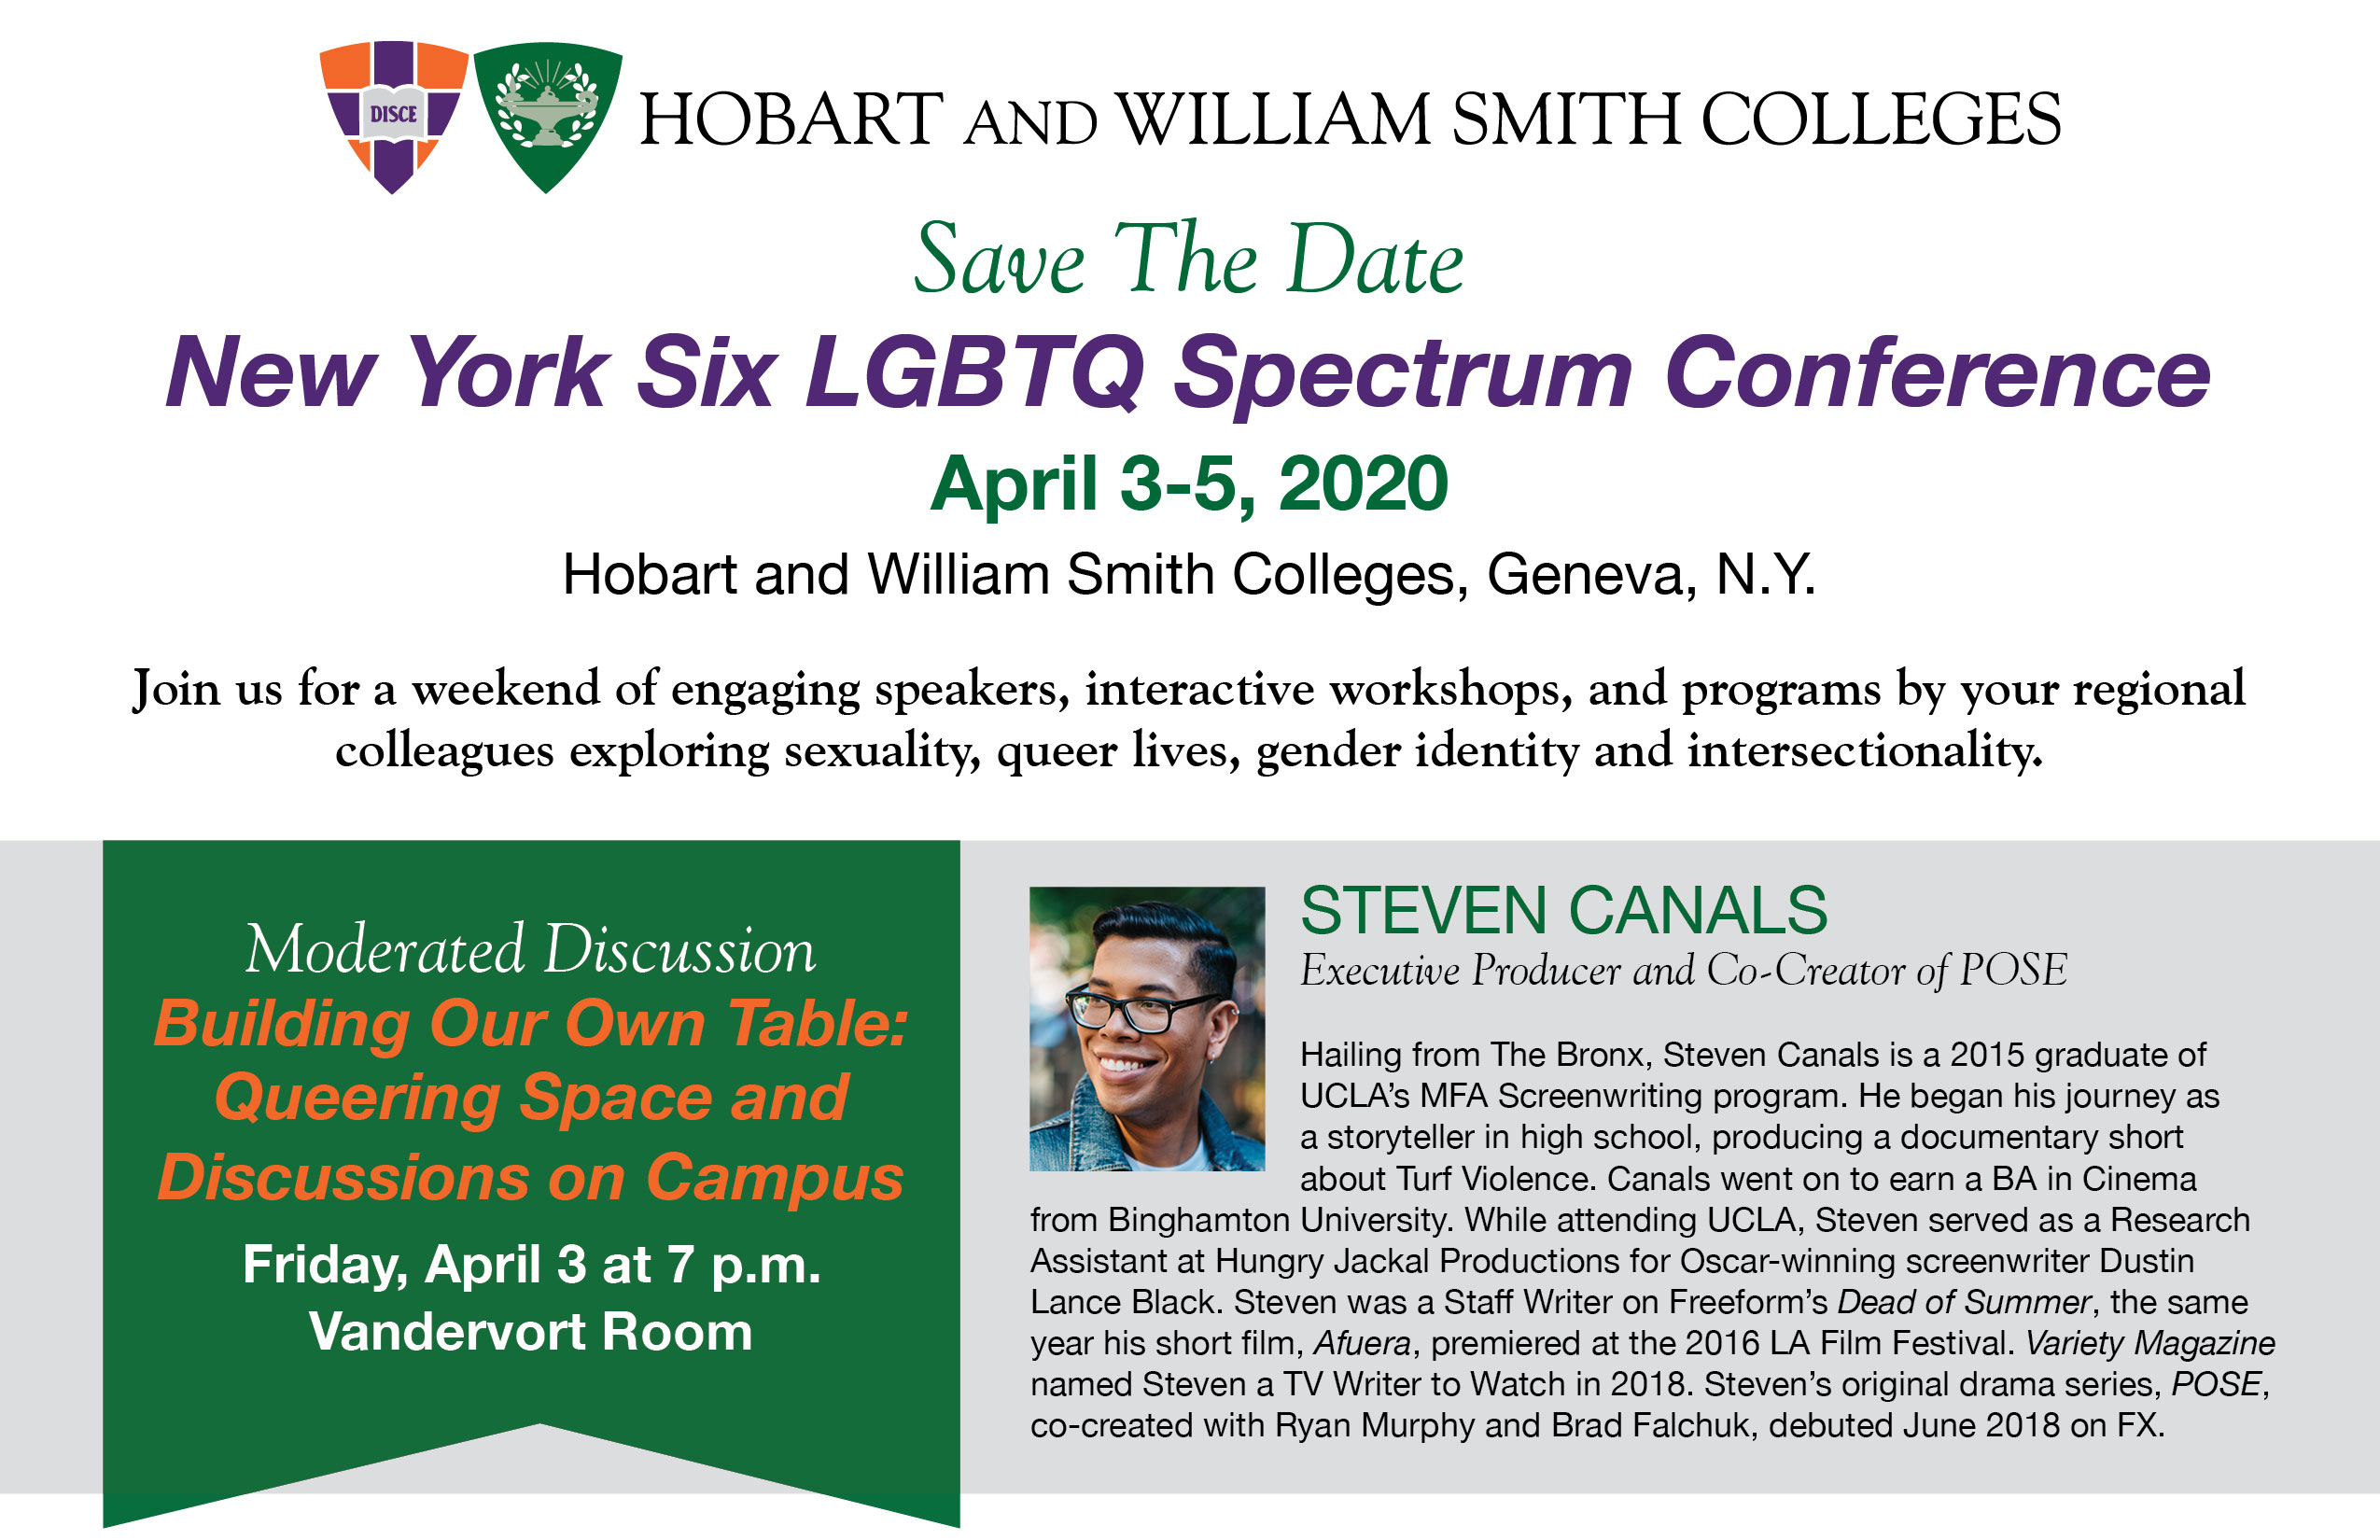 hobart and william smith colleges academic calendar ...